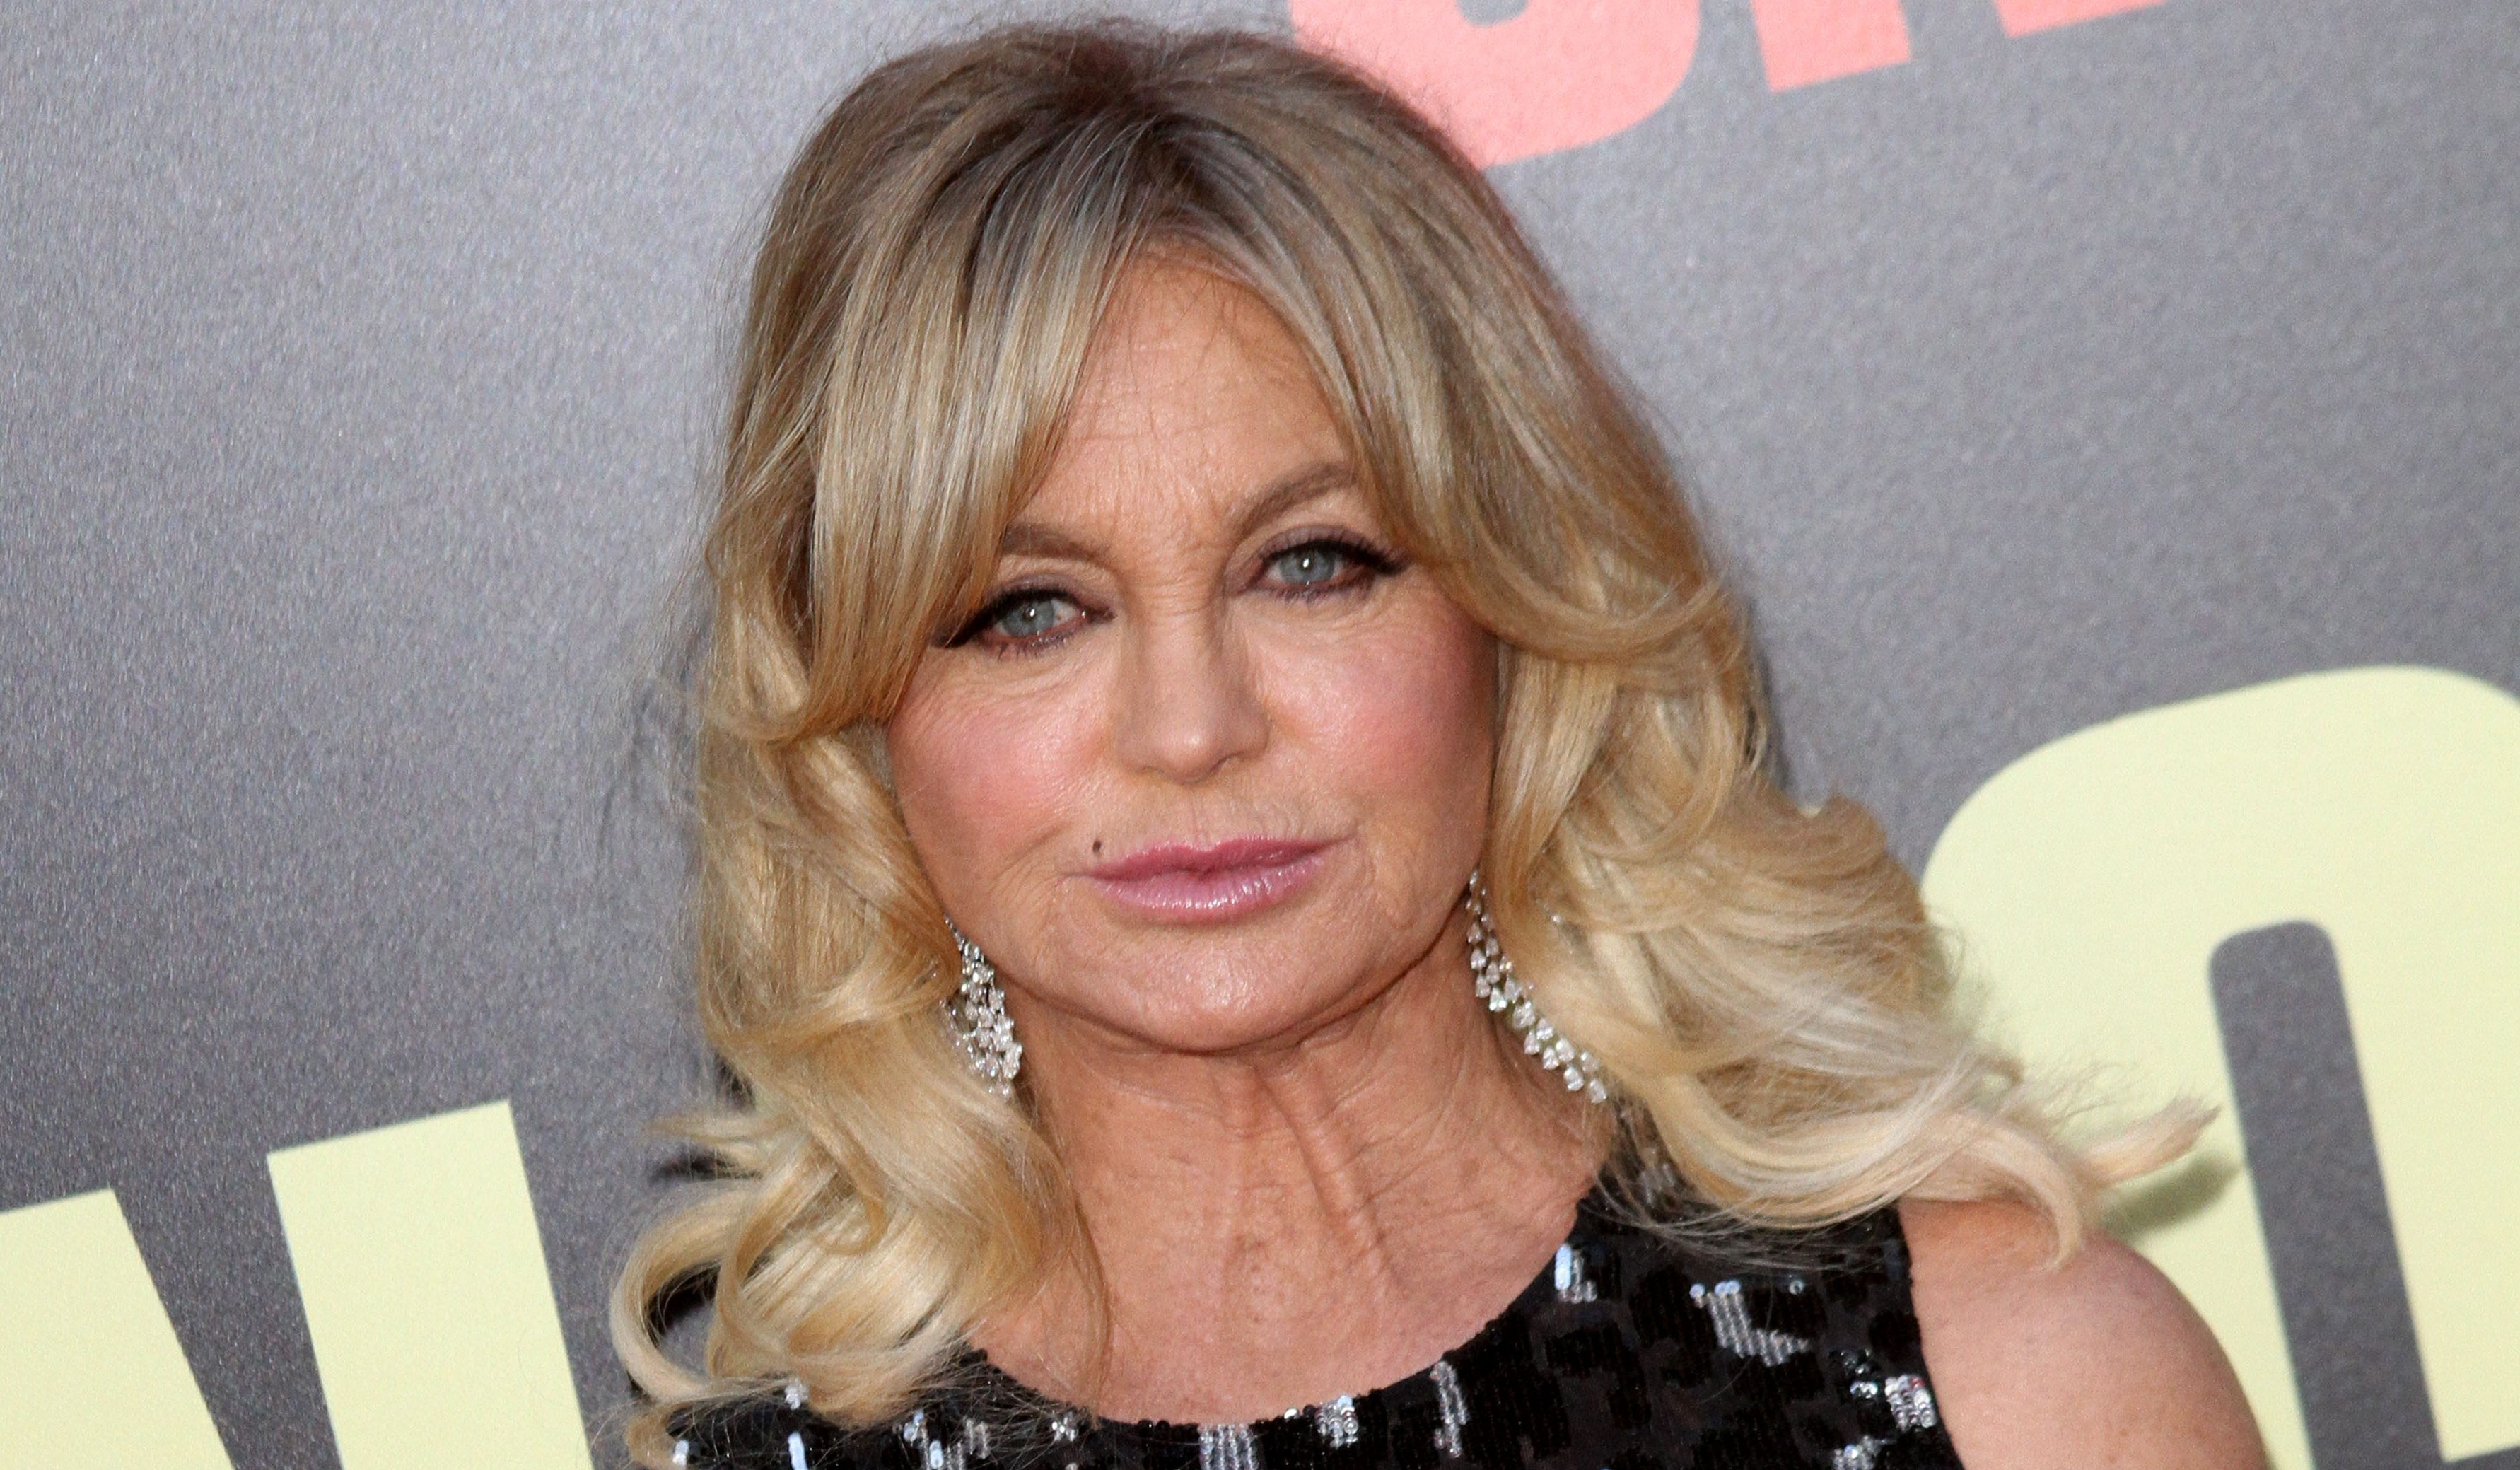 Goldie Hawn Shares Heartbreaking News In Touching